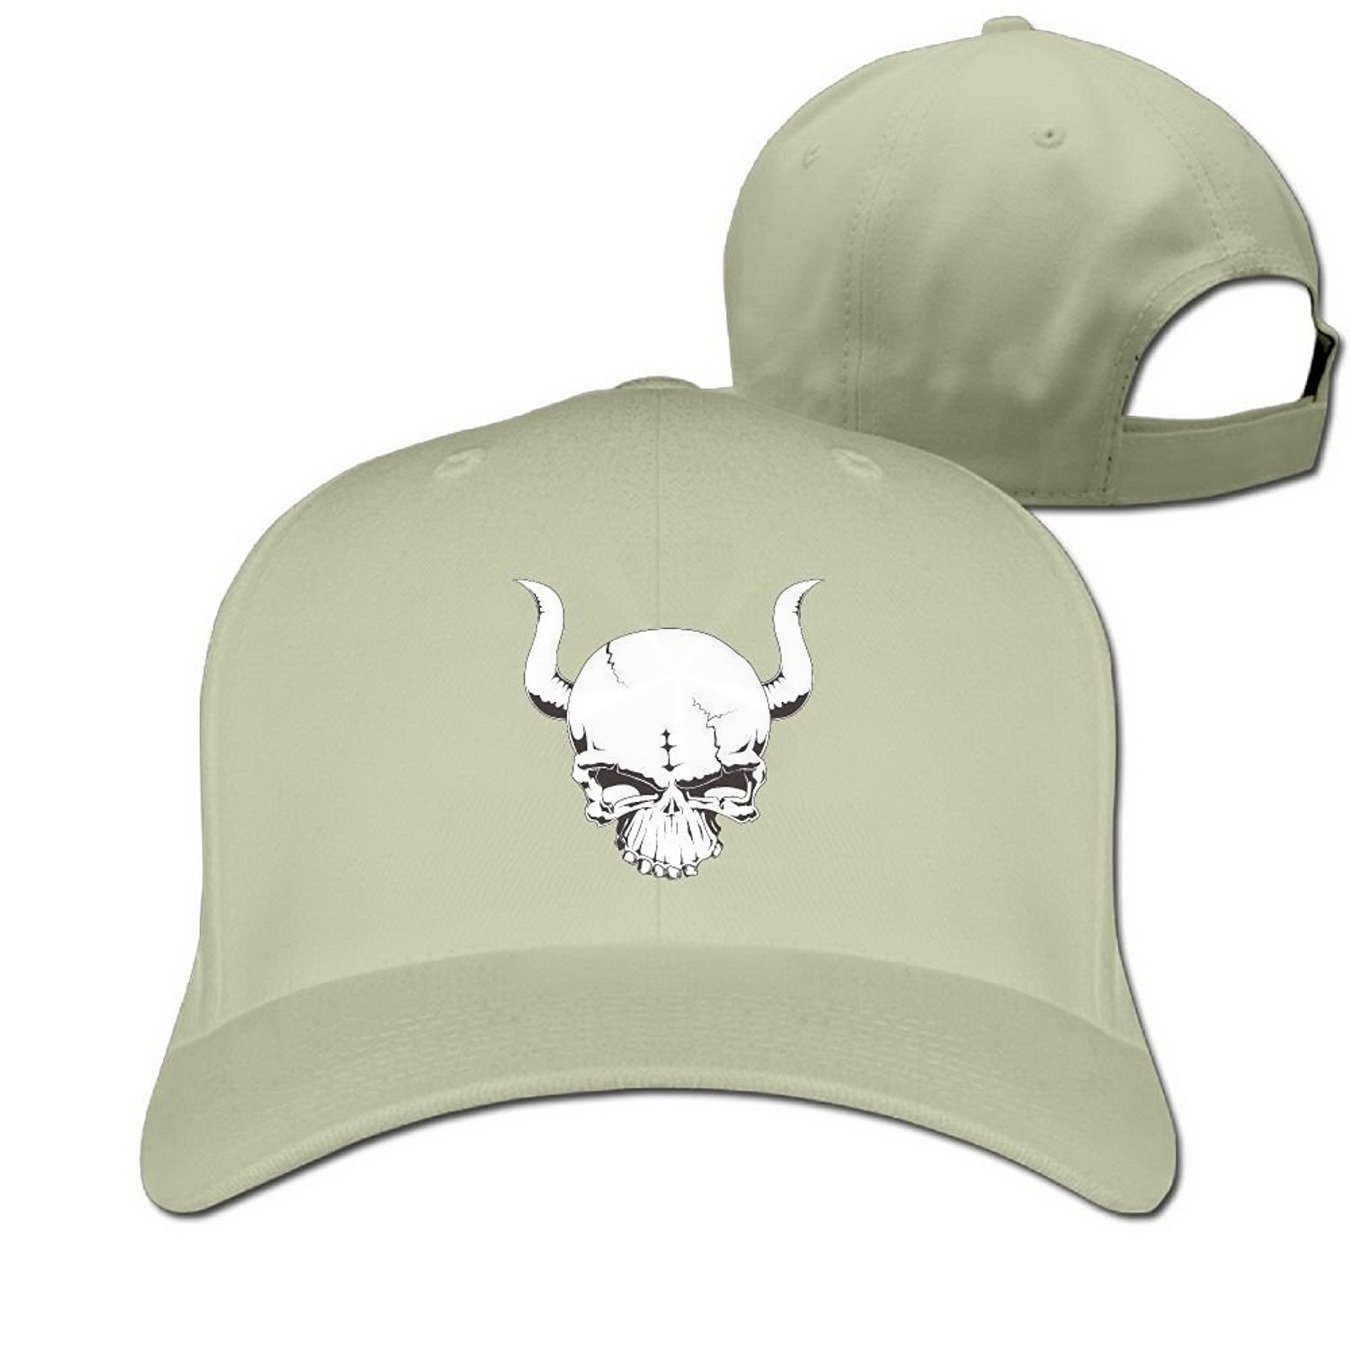 Cool Bull Skull Adjustable Baseball Caps for Men Women Natural